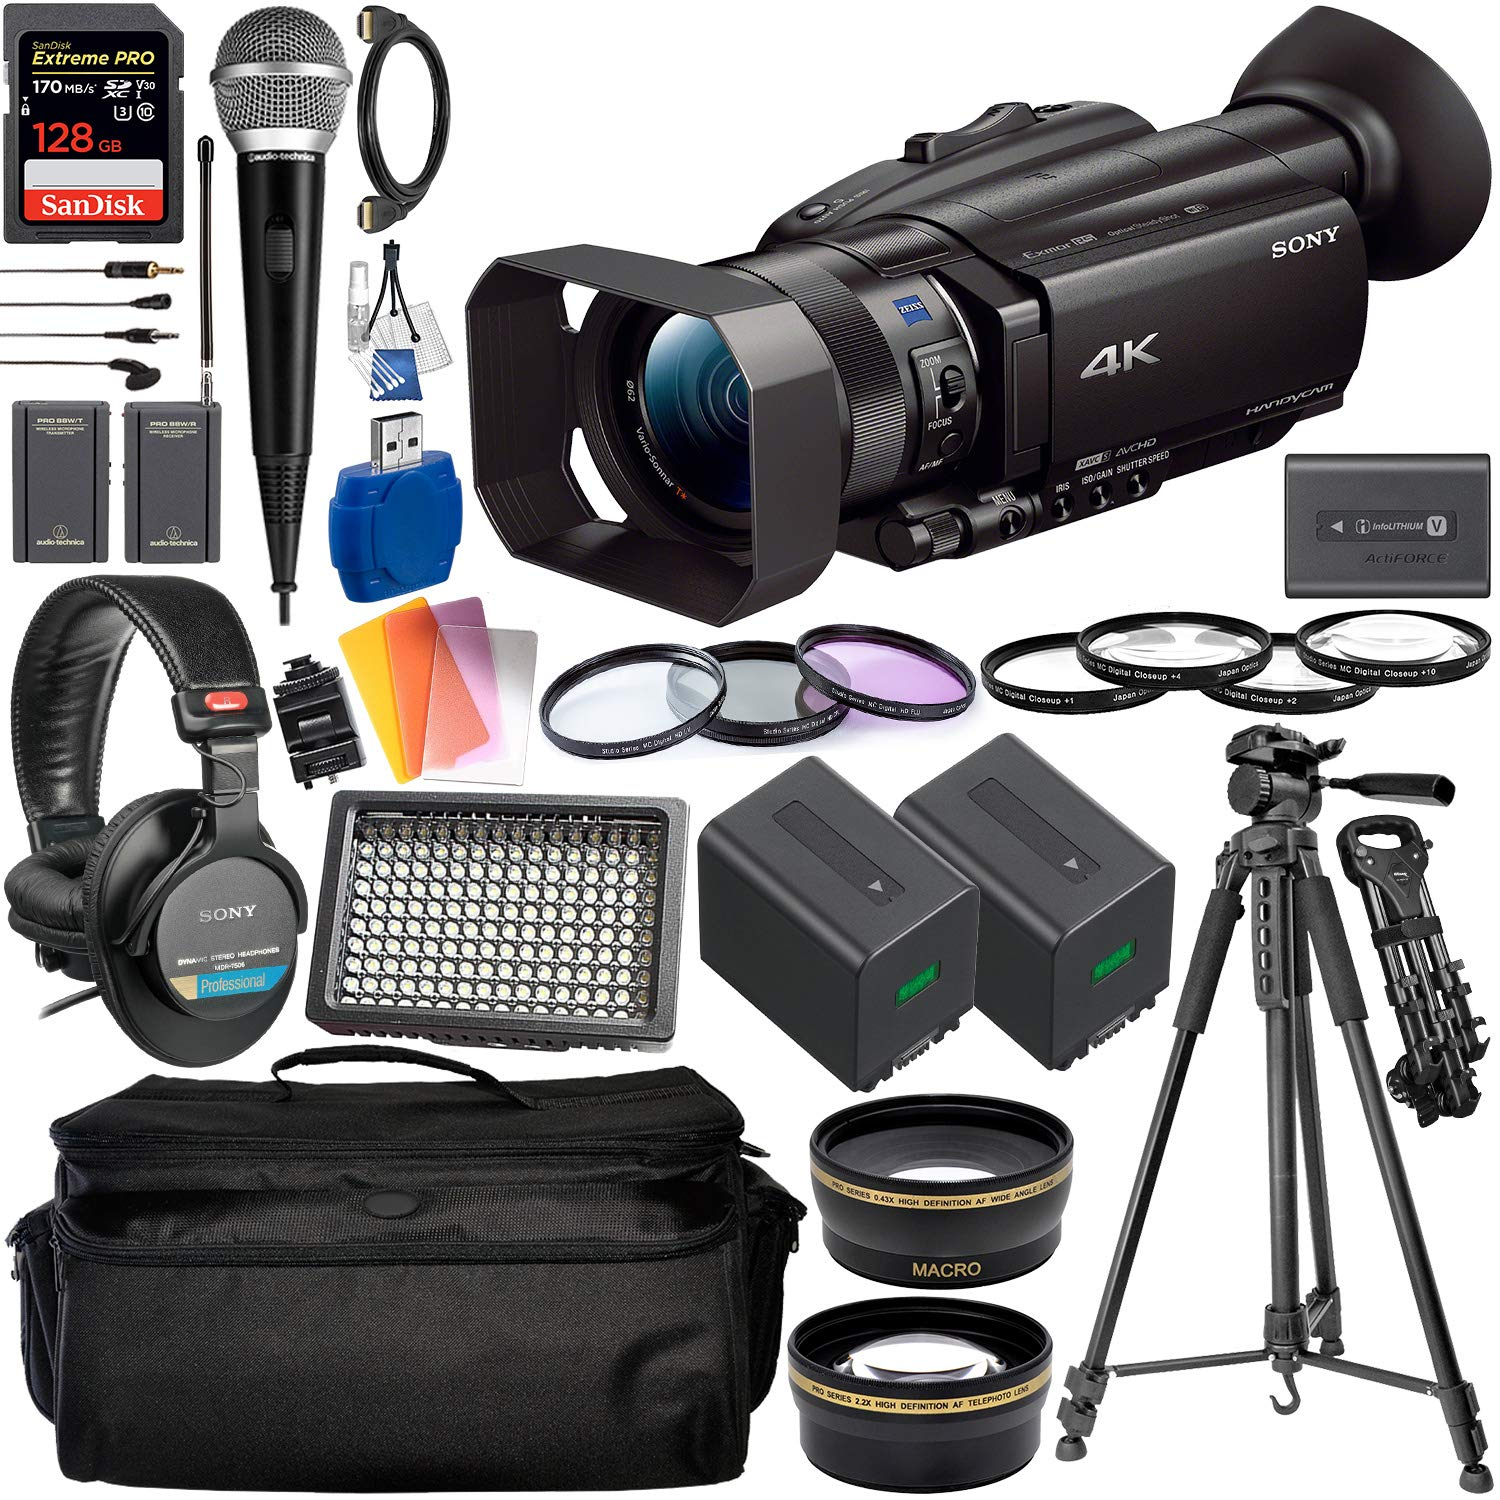 Sony FDR-AX700 4K Camcorder with Deluxe Accessory Bundle - Includes: Audio-Technica VHF TwinMic System + Sony MDR-7506 Headphones + SanDisk Extreme PRO 128GB SDXC Memory Card + More by Sony